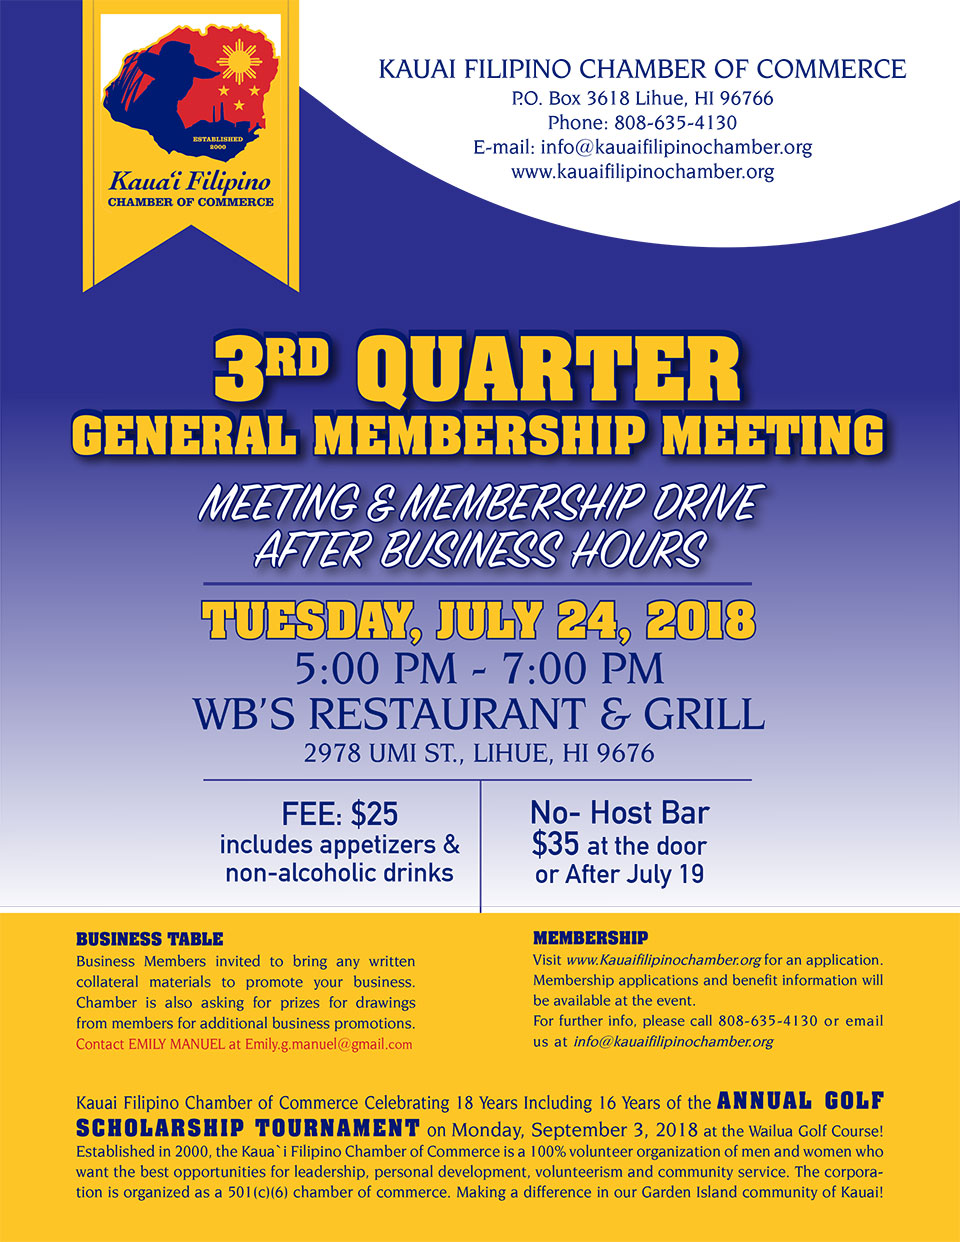 3rd Quarter General Membership Meeting Flyer